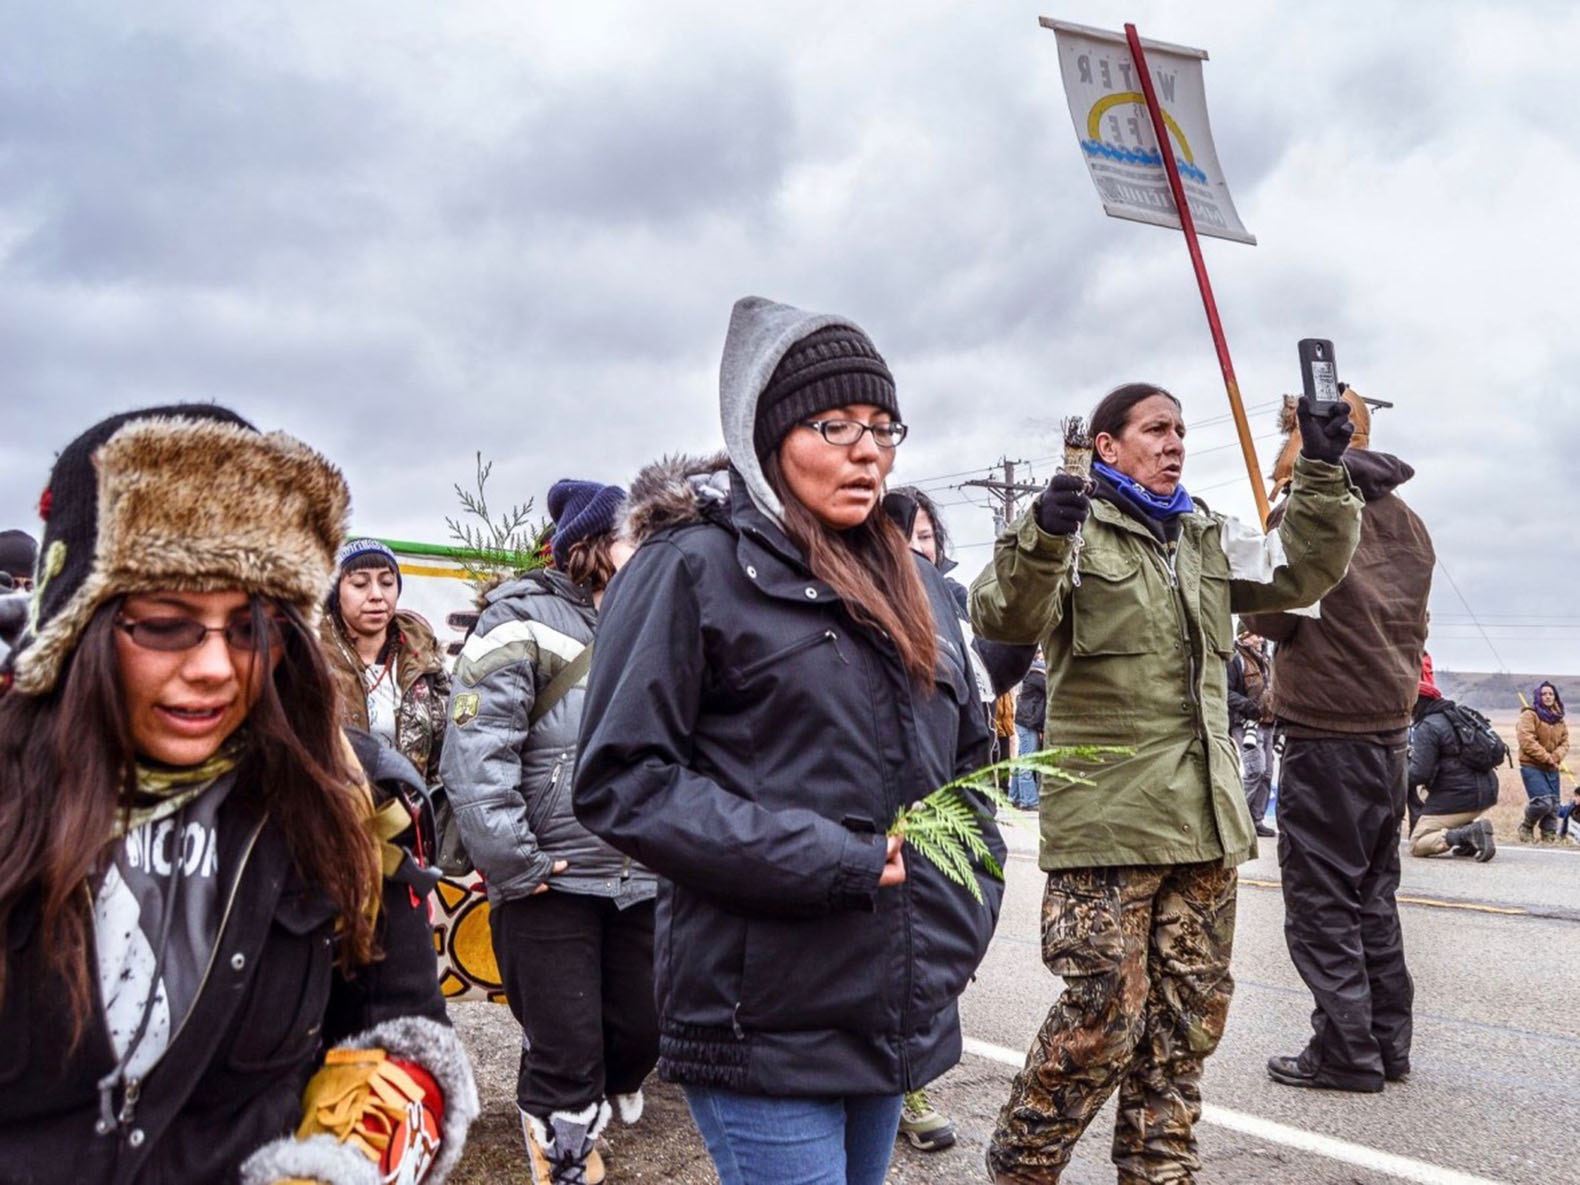 North Dakota lawmaker wants to make it legal to run over protesters